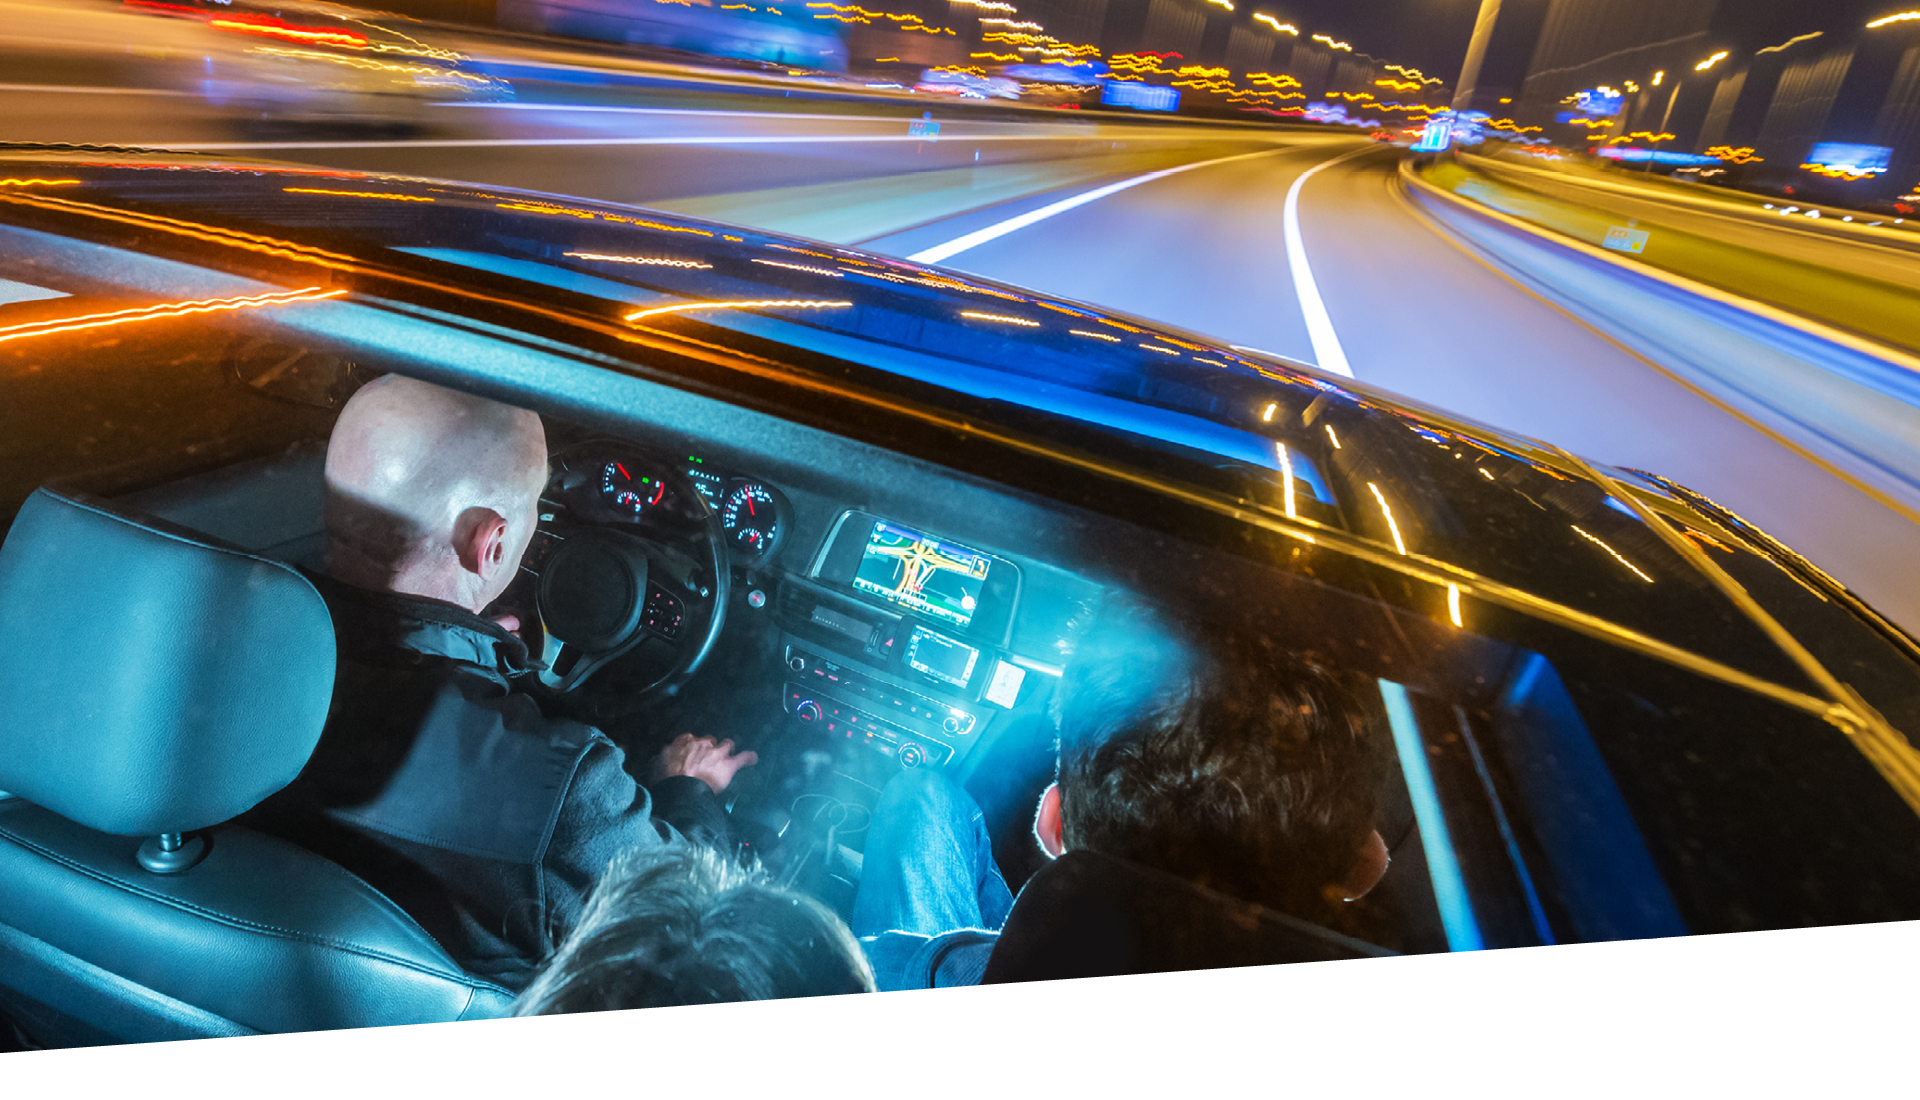 Mobility, Mobility experience, roof systems, roof solutions, driving, in-vehicle experience, relax and ride, work and ride, play and ride, socialize and ride